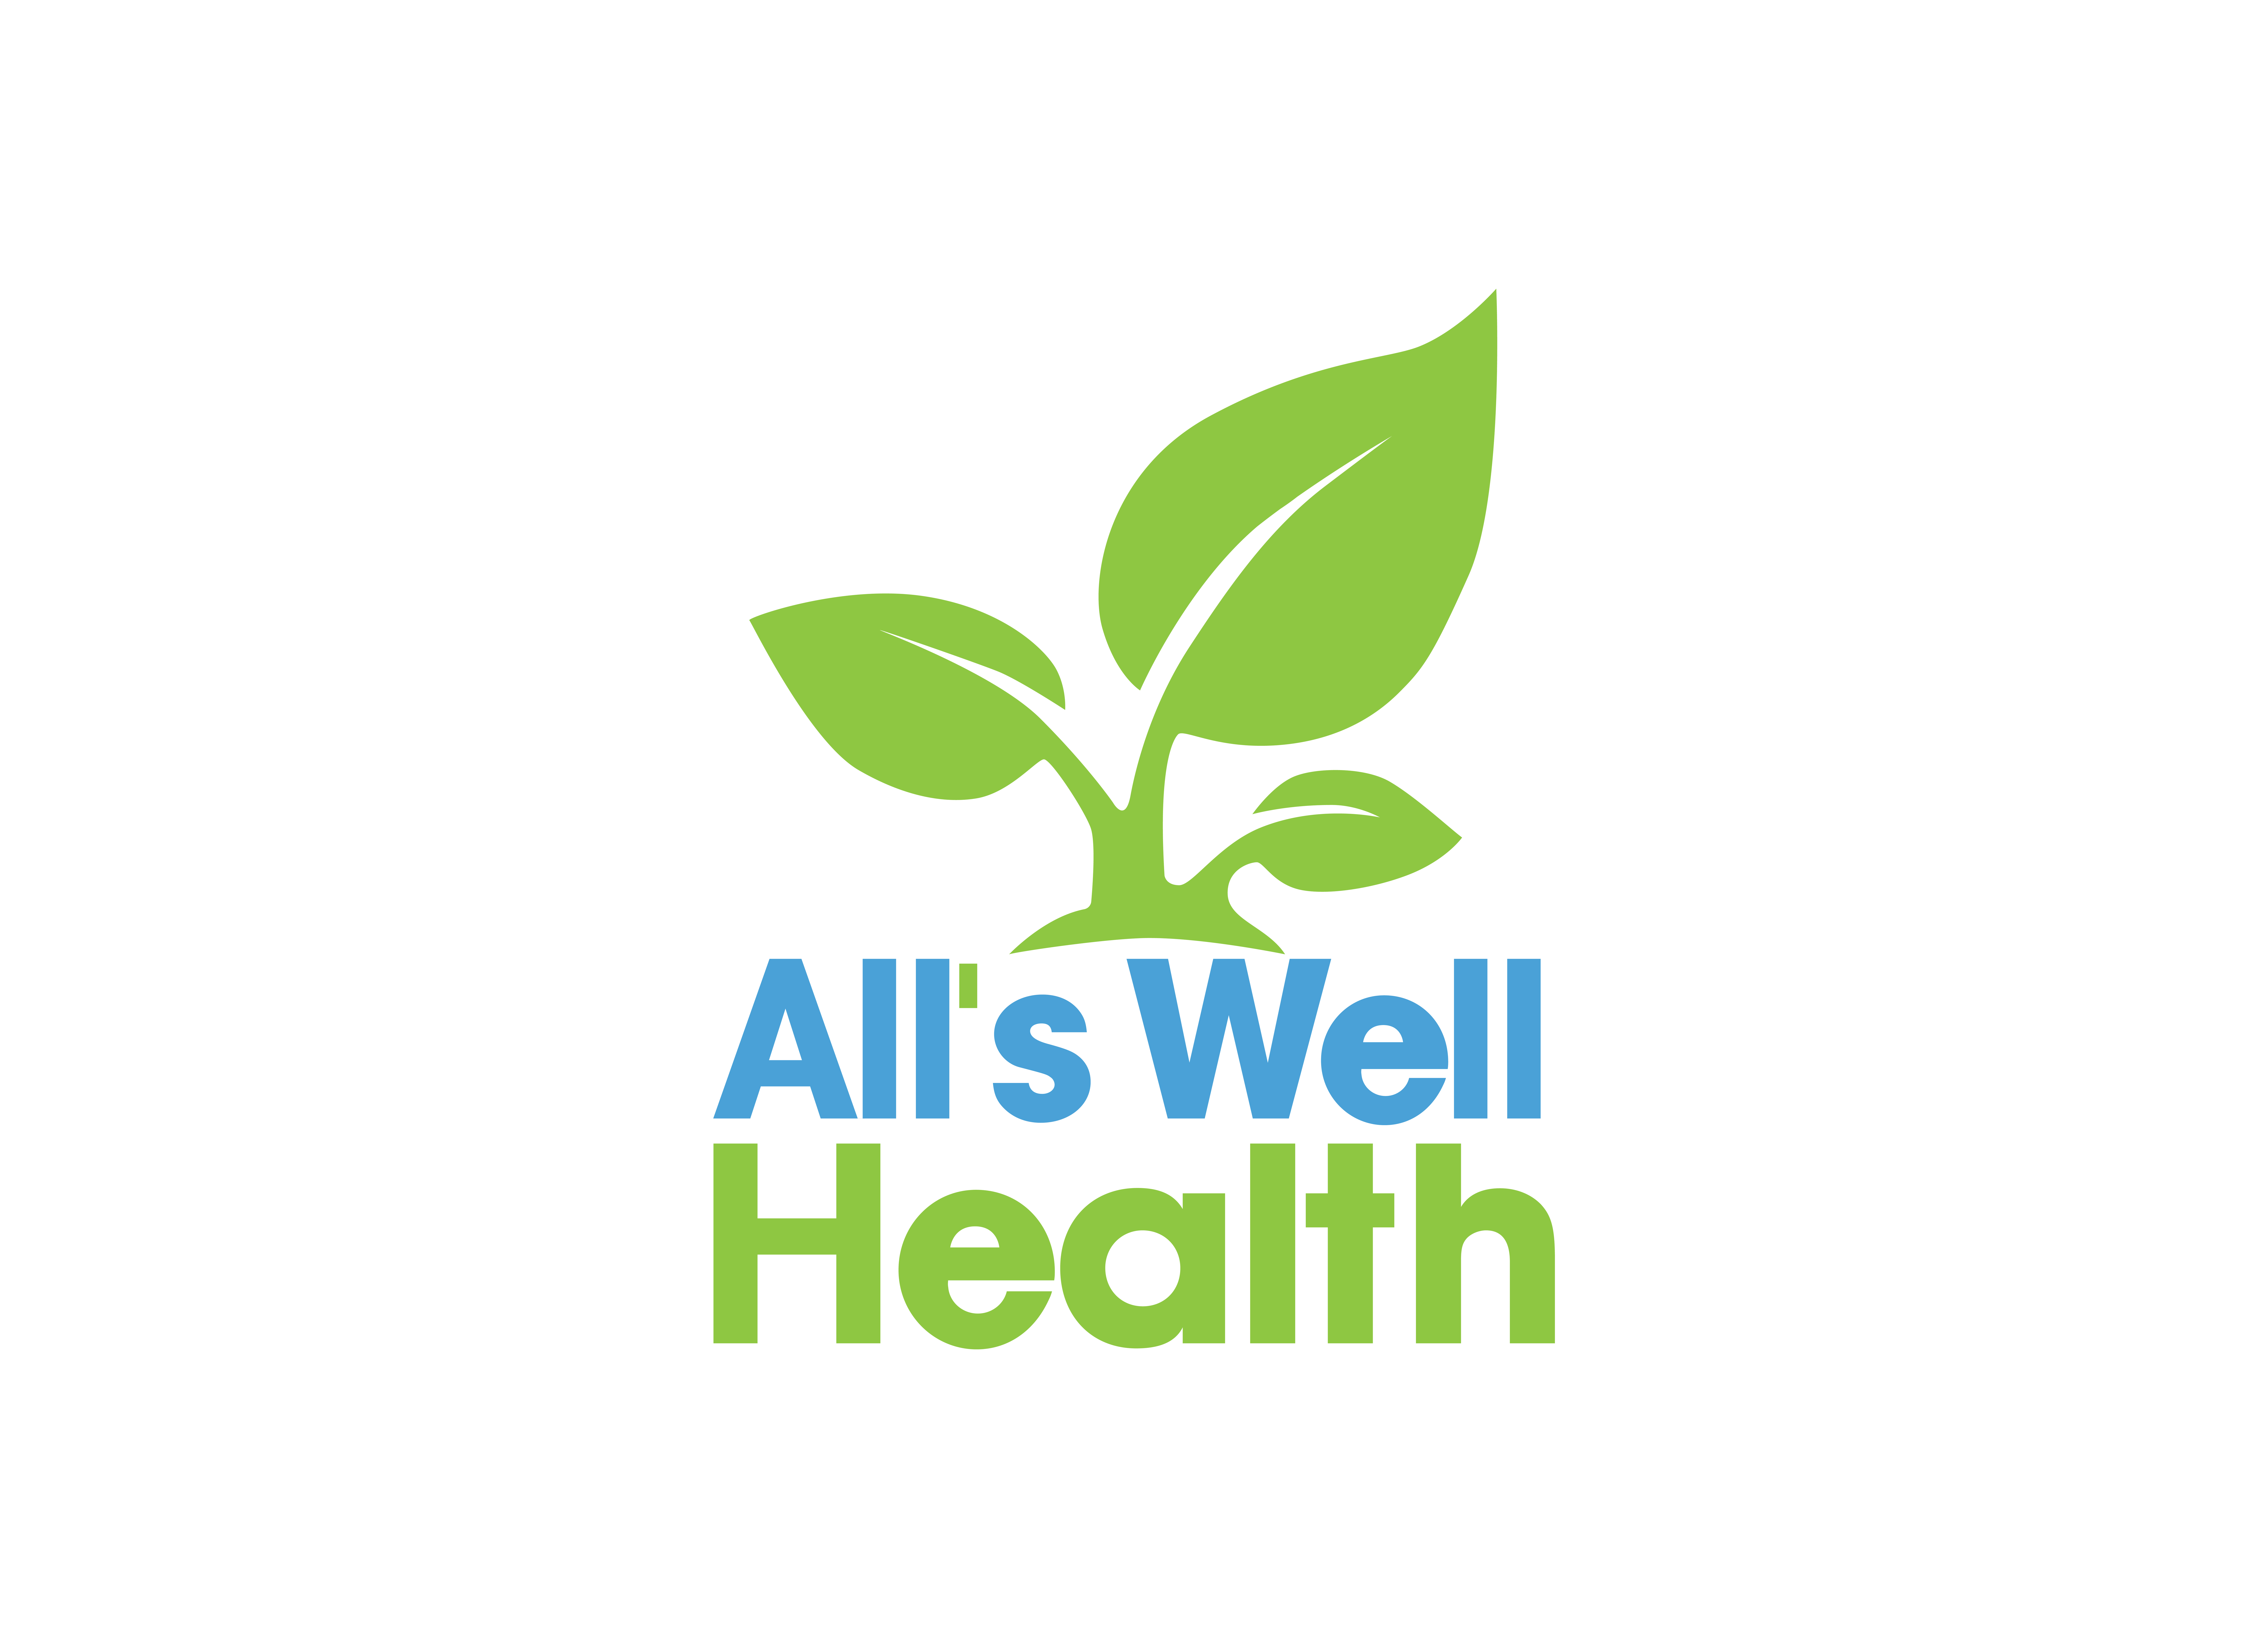 All's Well Health - Shaklee Distributor